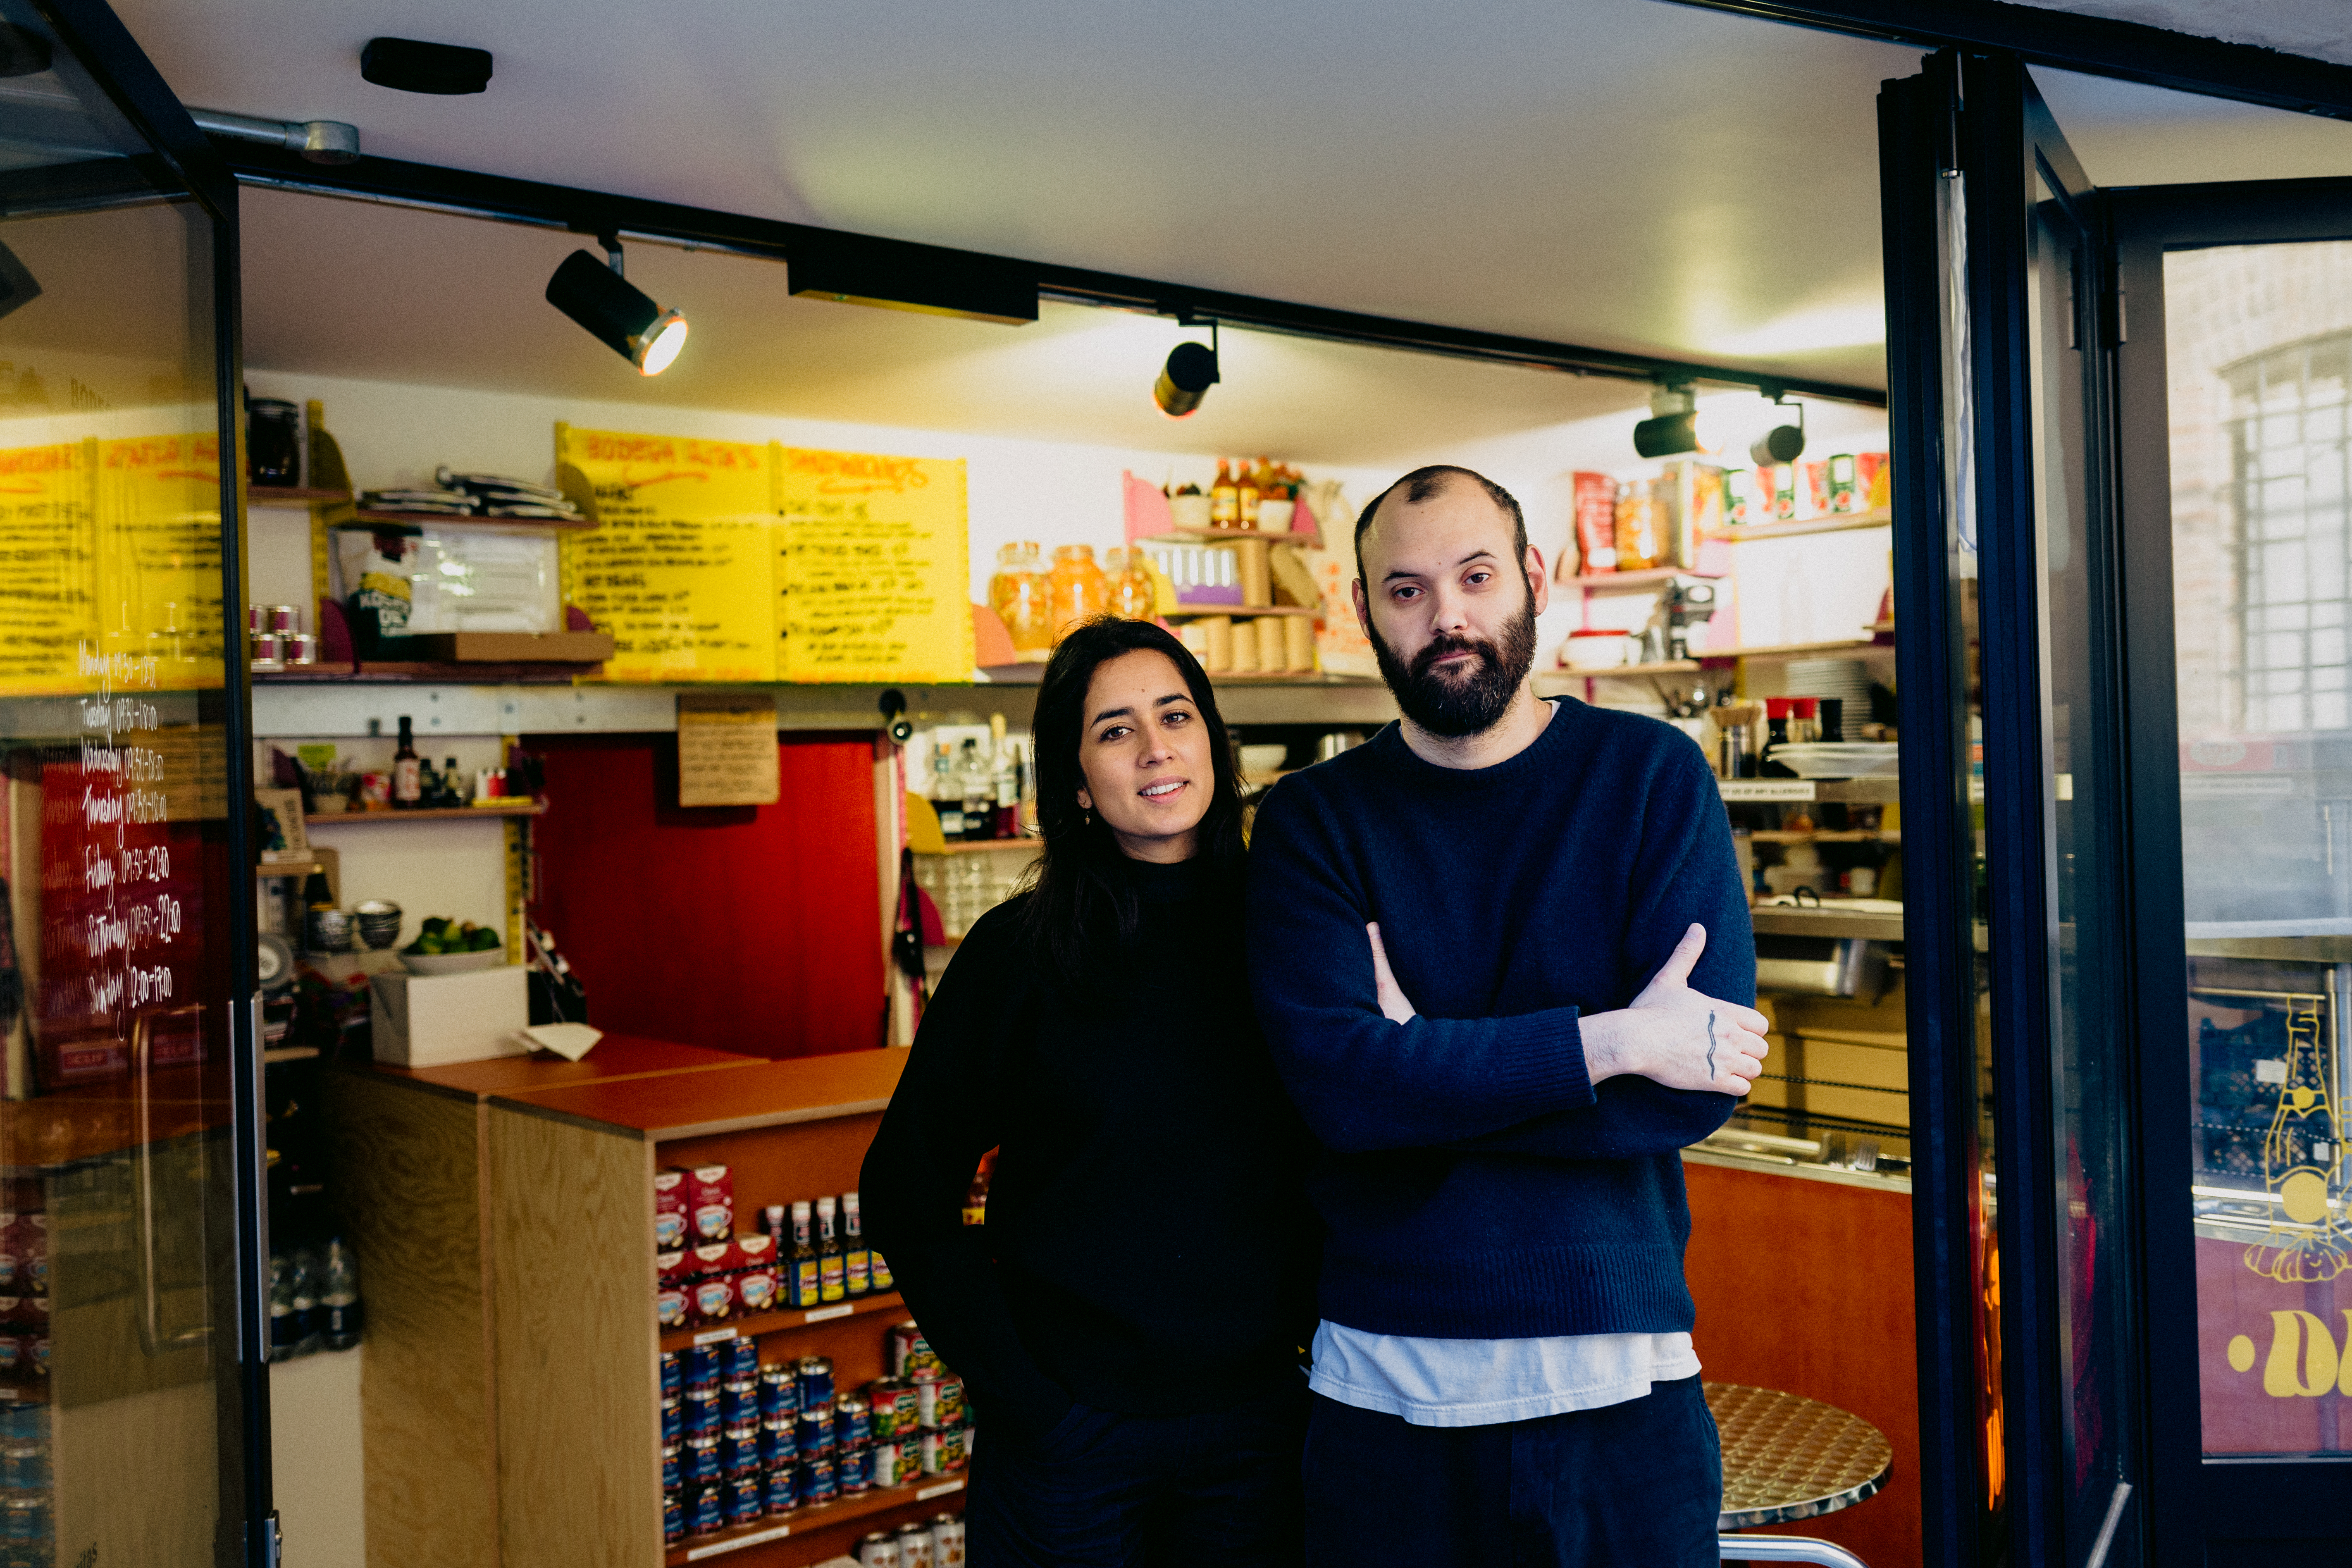 Bodega Rita's at Coal Drops Yard, King's Cross: Missy Flynn and Gabe Pryce outside their sandwich shop and deli